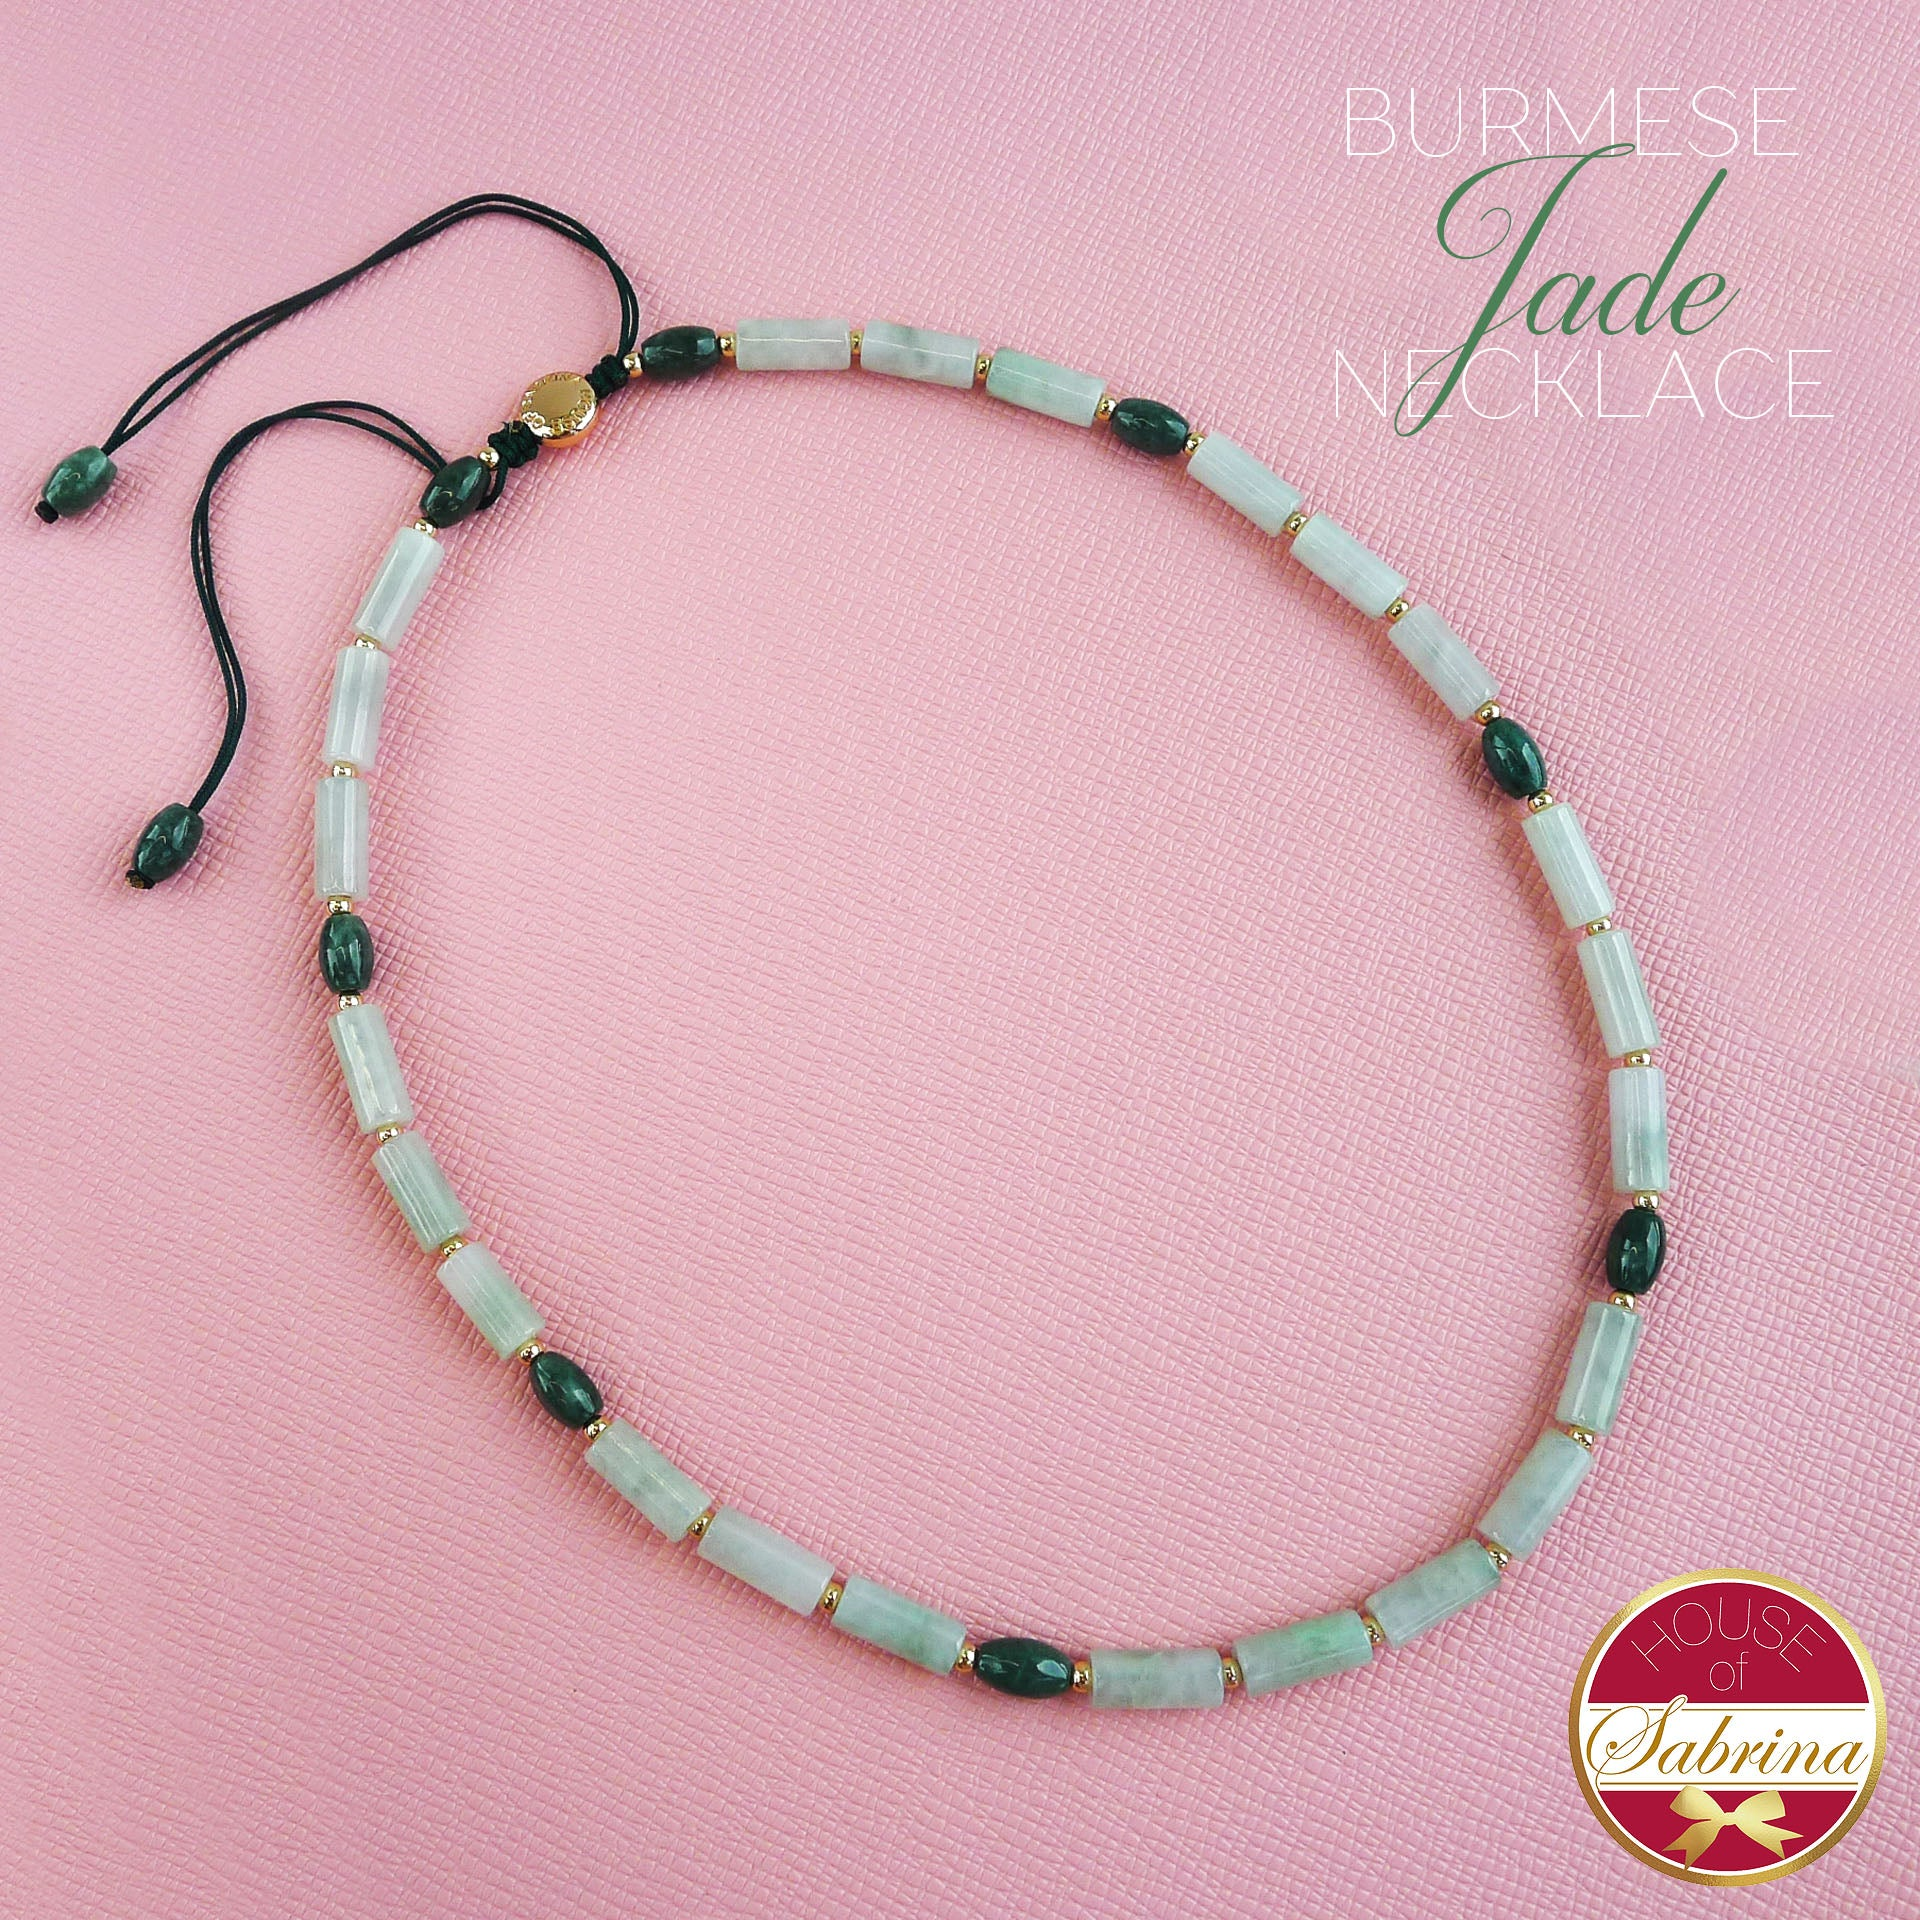 HIGH GRADE BURMESE JADE GEMSTONE NECKLACE